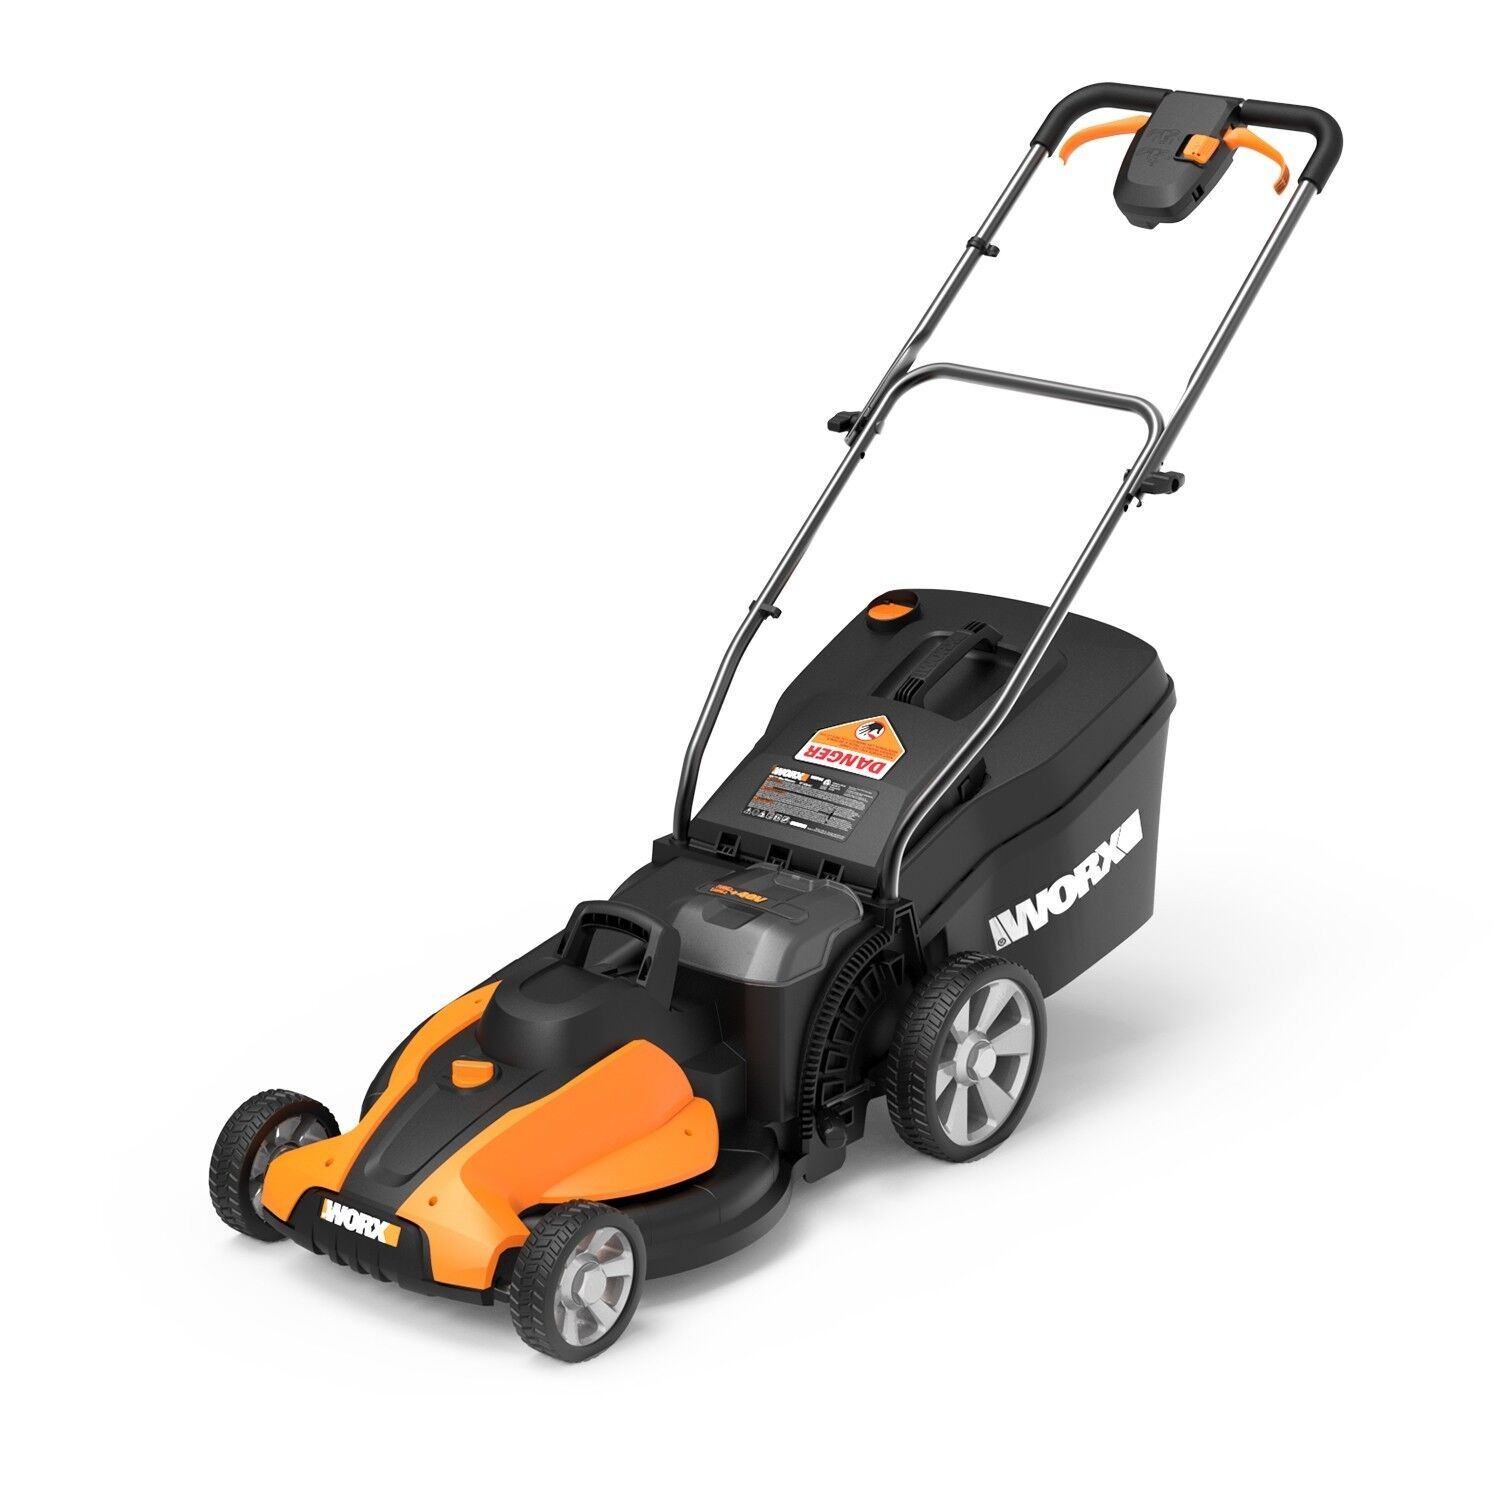 worx-wg744-2x20v-powershare-17-cordless-electric-lawn-mower-with-mulch-plug